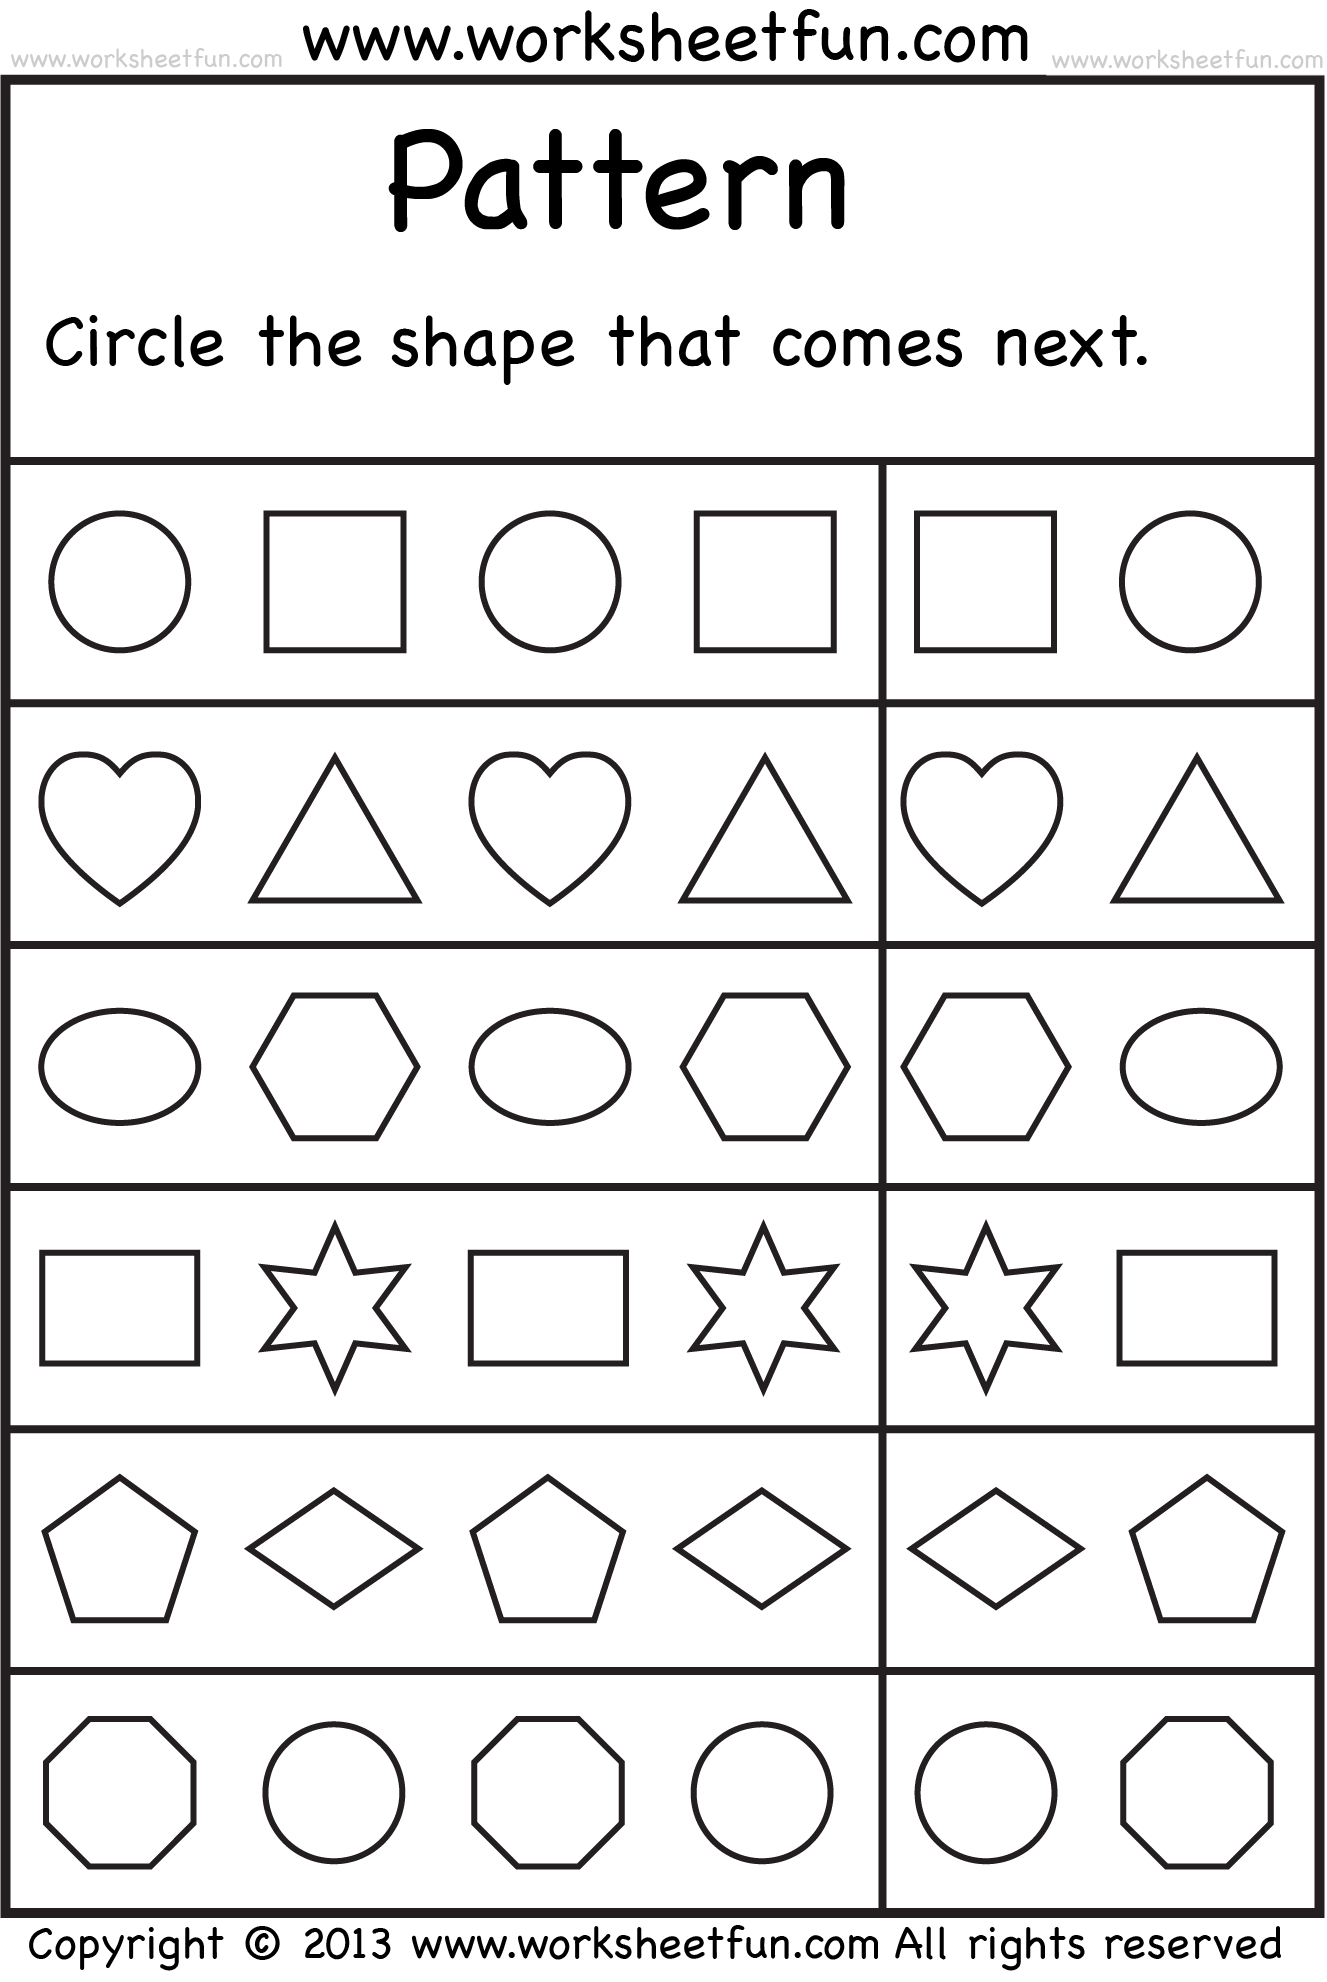 Proatmealus  Unique  Images About School Worksheets On Pinterest  Number Words  With Entrancing  Images About School Worksheets On Pinterest  Number Words Alphabet Worksheets And Free Printable Kindergarten Worksheets With Lovely Shapes Of Molecules Worksheet Also Cursive Worksheet Maker In Addition Personal Boundaries Worksheet And Soil Formation Worksheet As Well As Kindergarten Pattern Worksheets Additionally Inverse Trigonometric Ratios Worksheet Answers From Pinterestcom With Proatmealus  Entrancing  Images About School Worksheets On Pinterest  Number Words  With Lovely  Images About School Worksheets On Pinterest  Number Words Alphabet Worksheets And Free Printable Kindergarten Worksheets And Unique Shapes Of Molecules Worksheet Also Cursive Worksheet Maker In Addition Personal Boundaries Worksheet From Pinterestcom